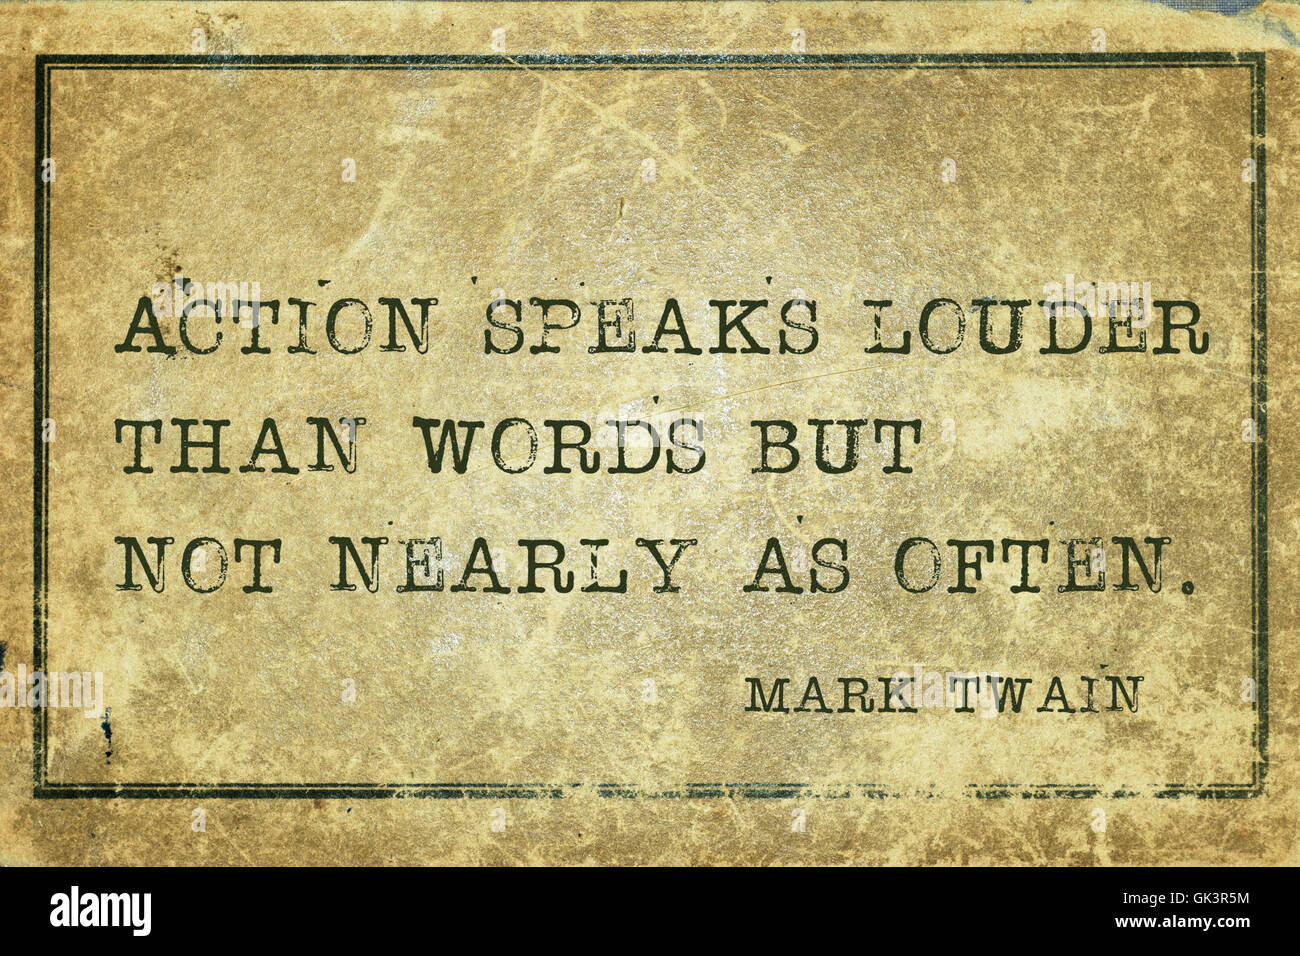 Action speaks louder than words -  famous American writer Mark Twain quote printed on grunge vintage cardboard Stock Photo